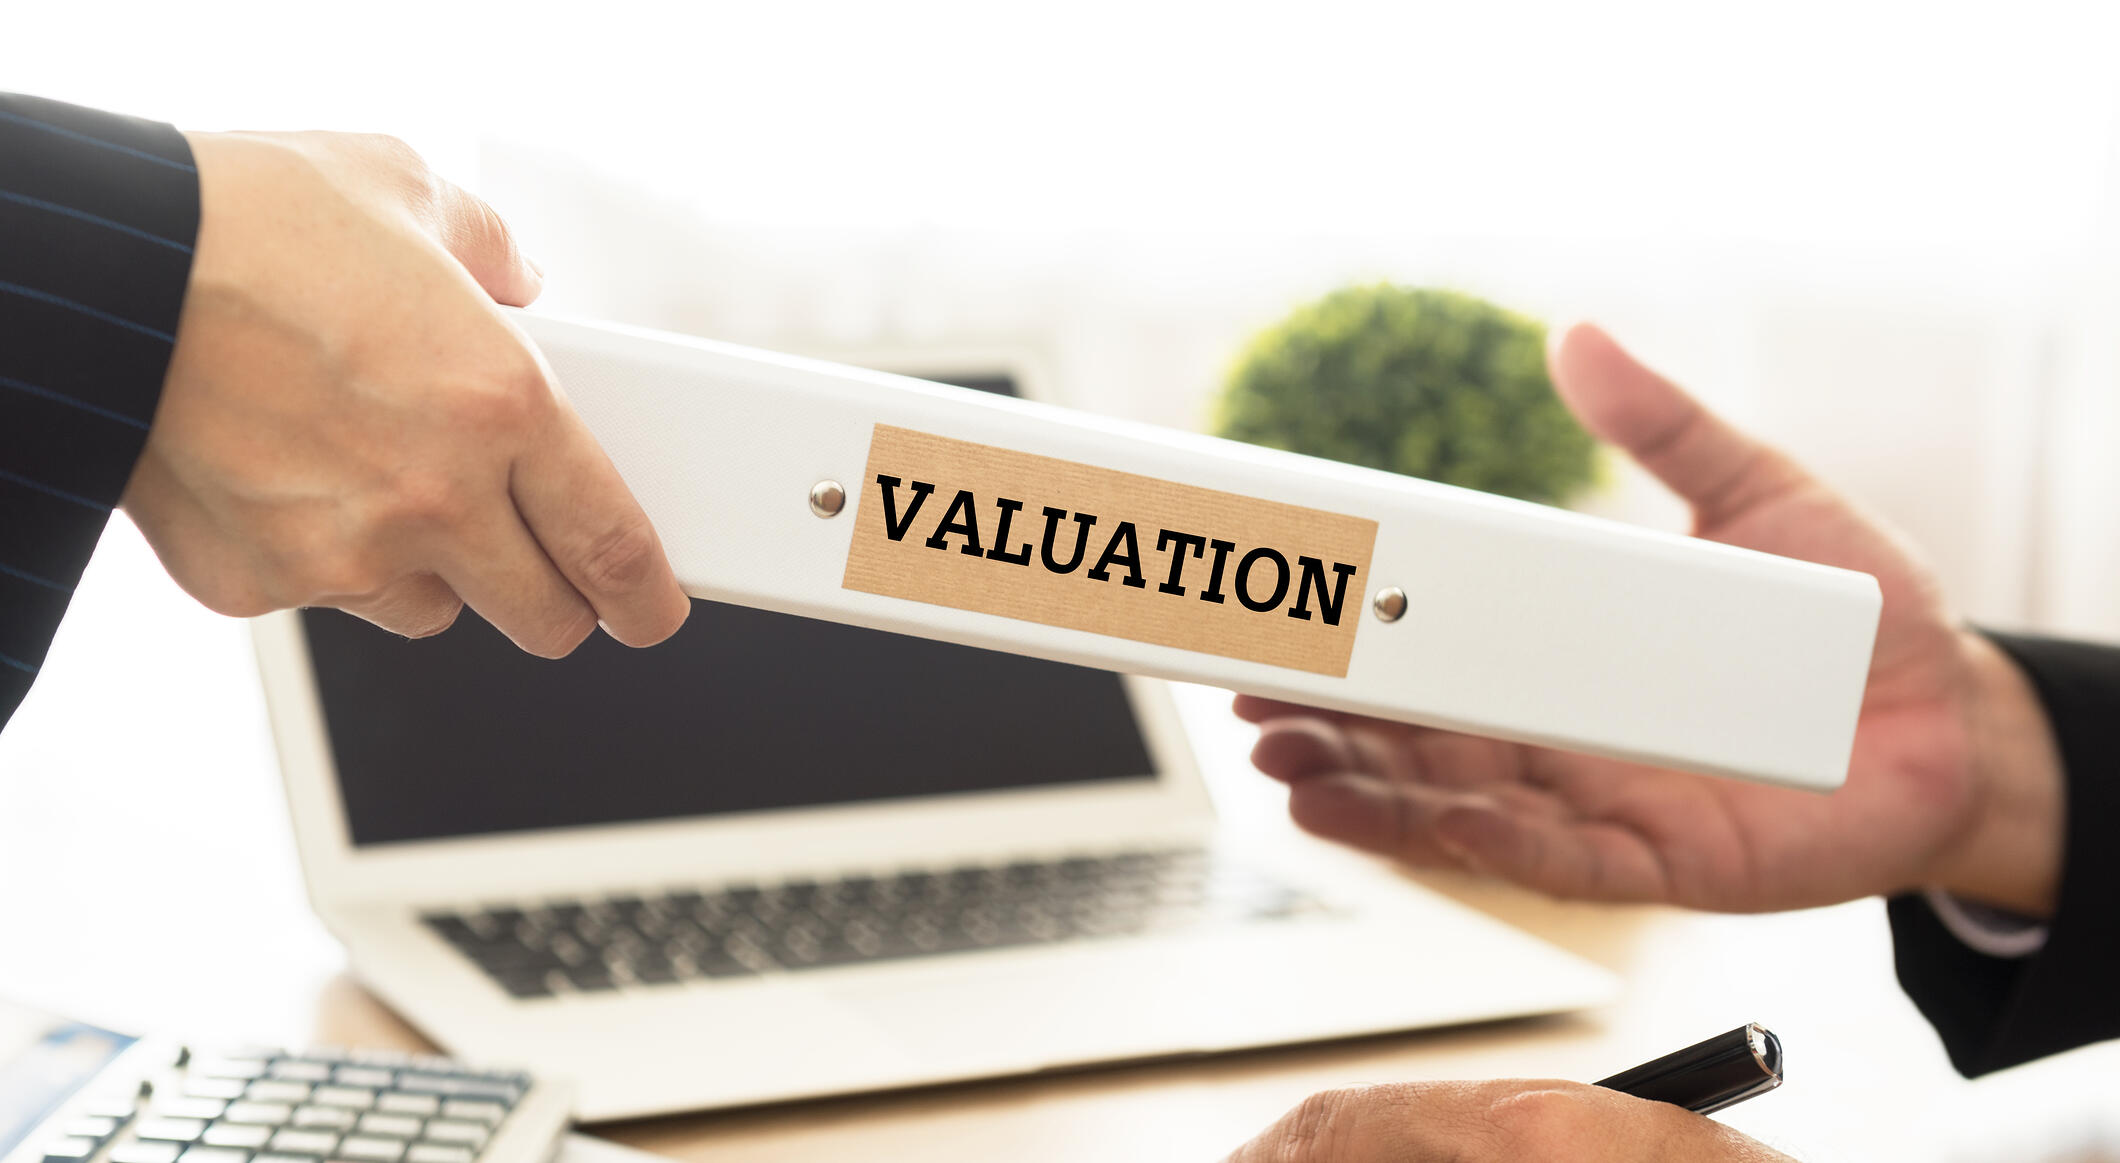 How to Value a Business Image